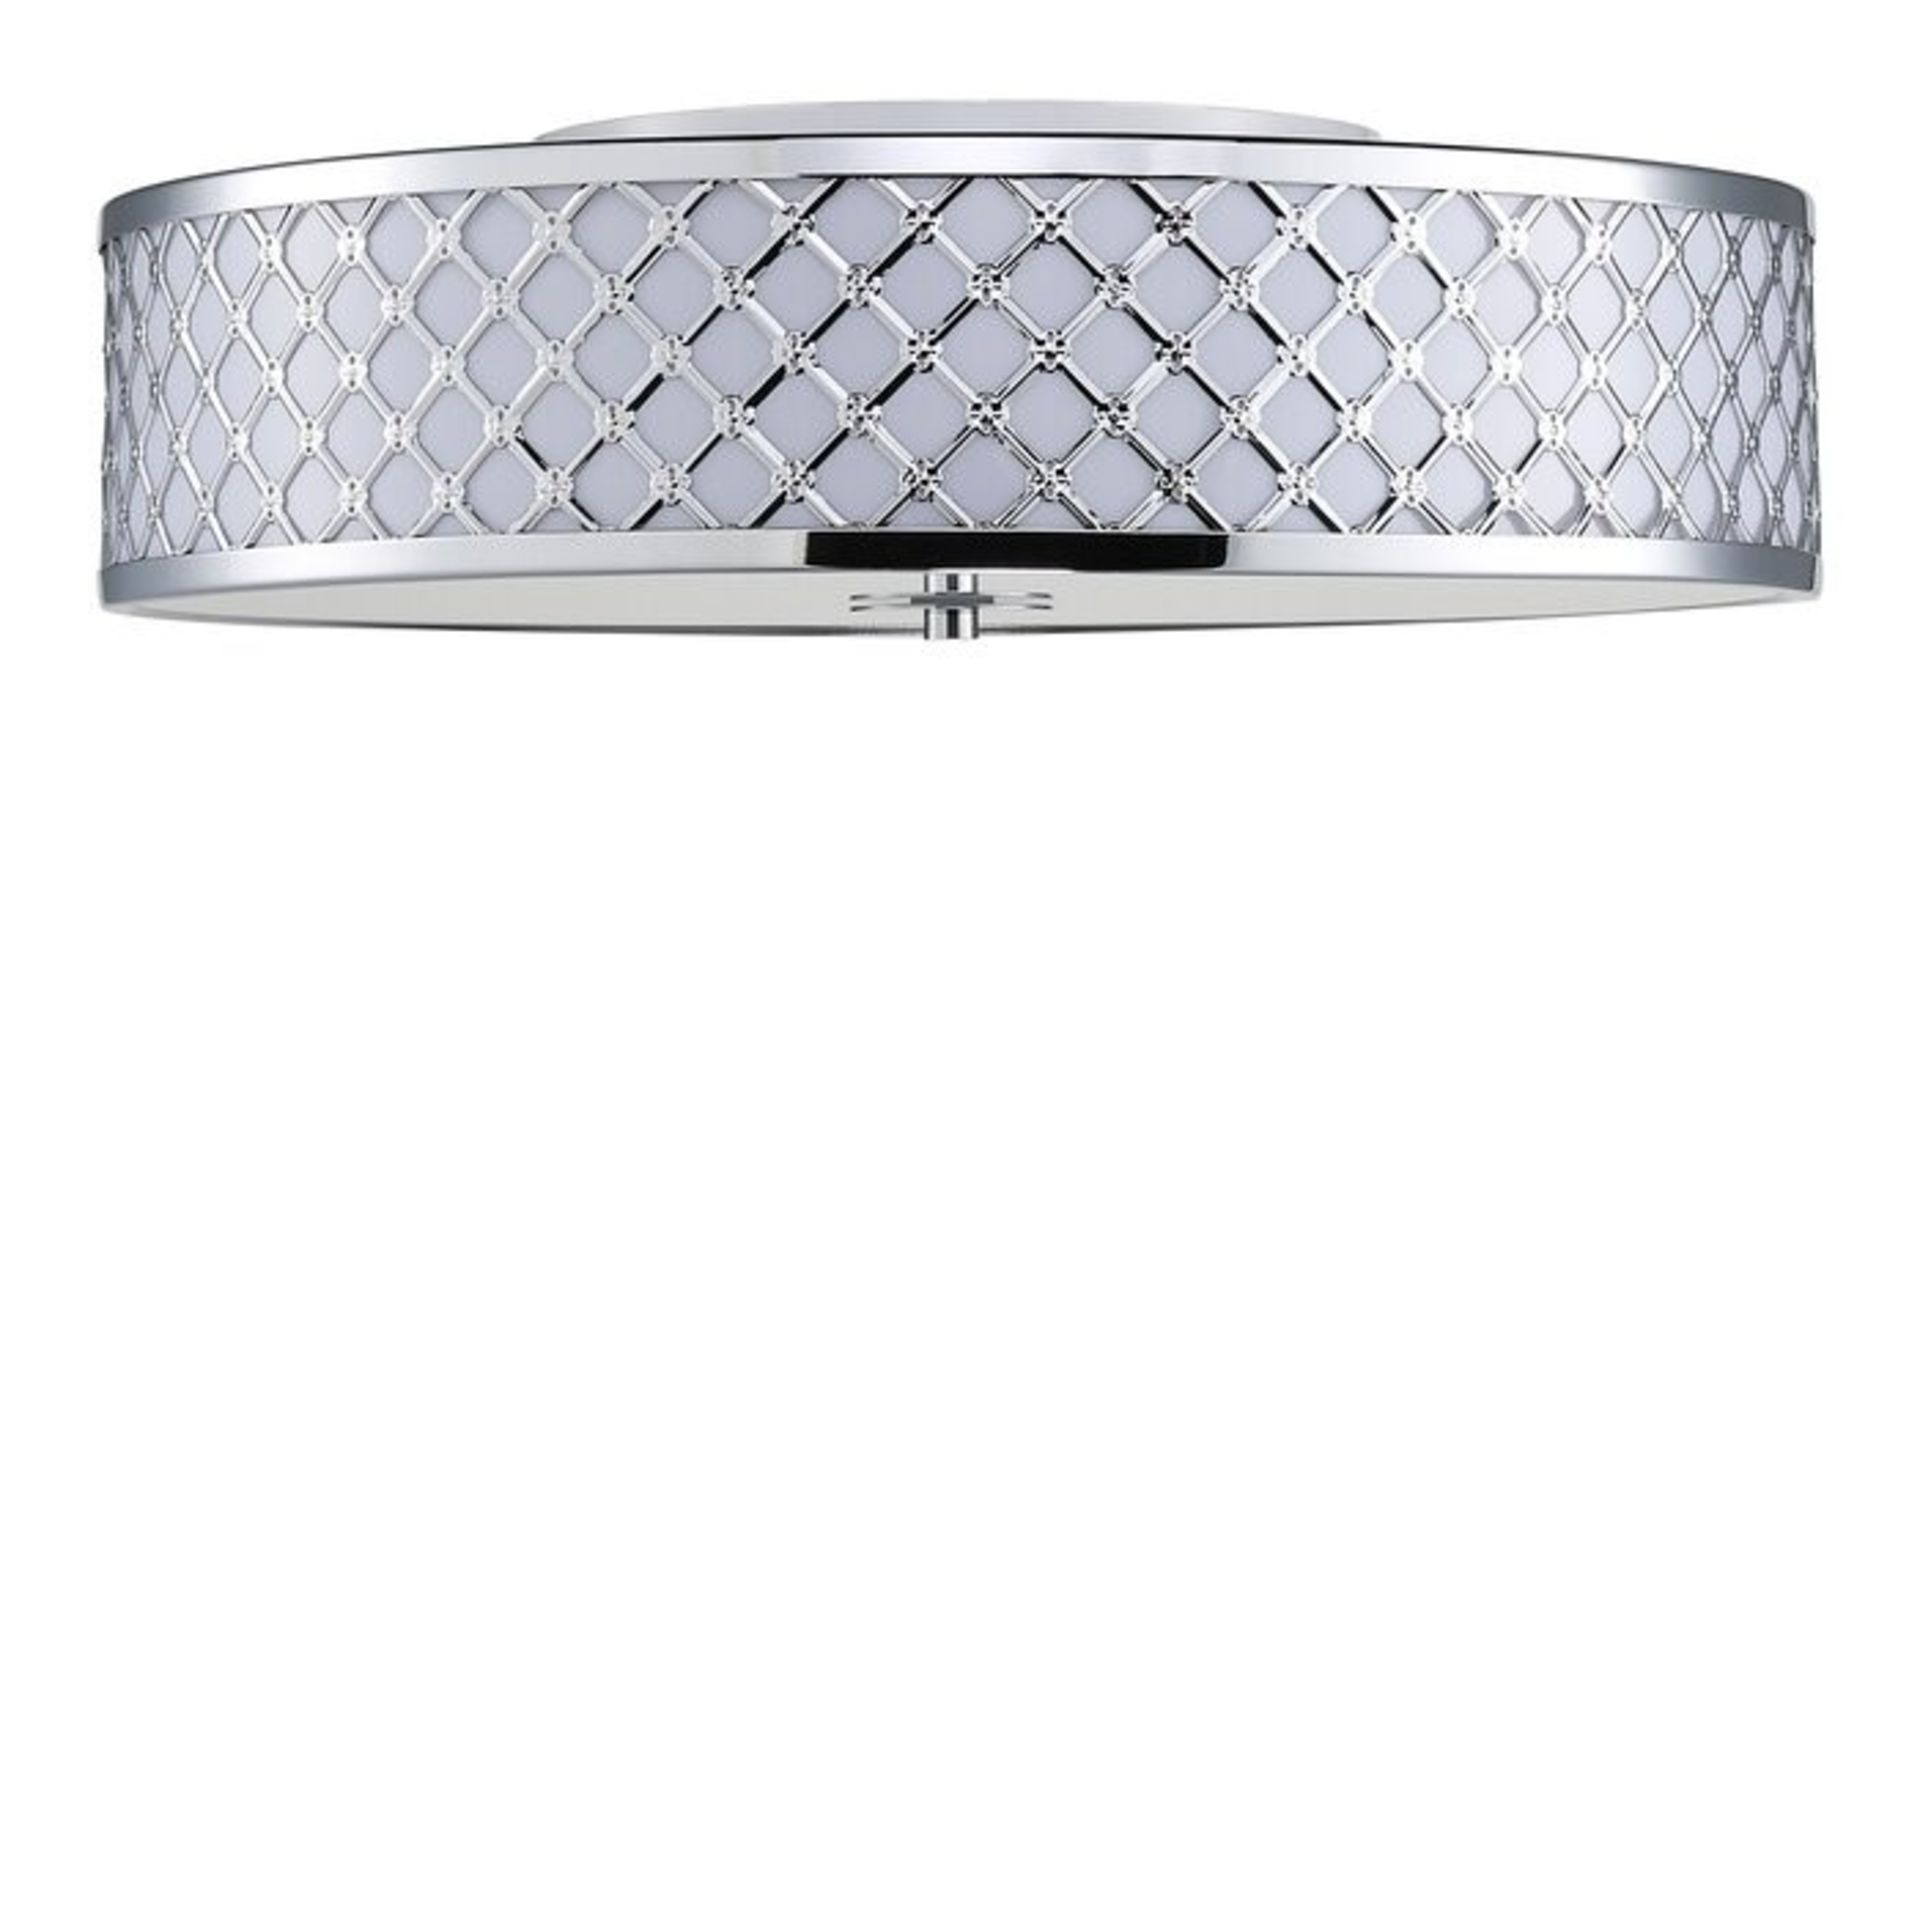 BENFIELD 5-LIGHT FLUSH MOUNT BY CLASSIC LIVING